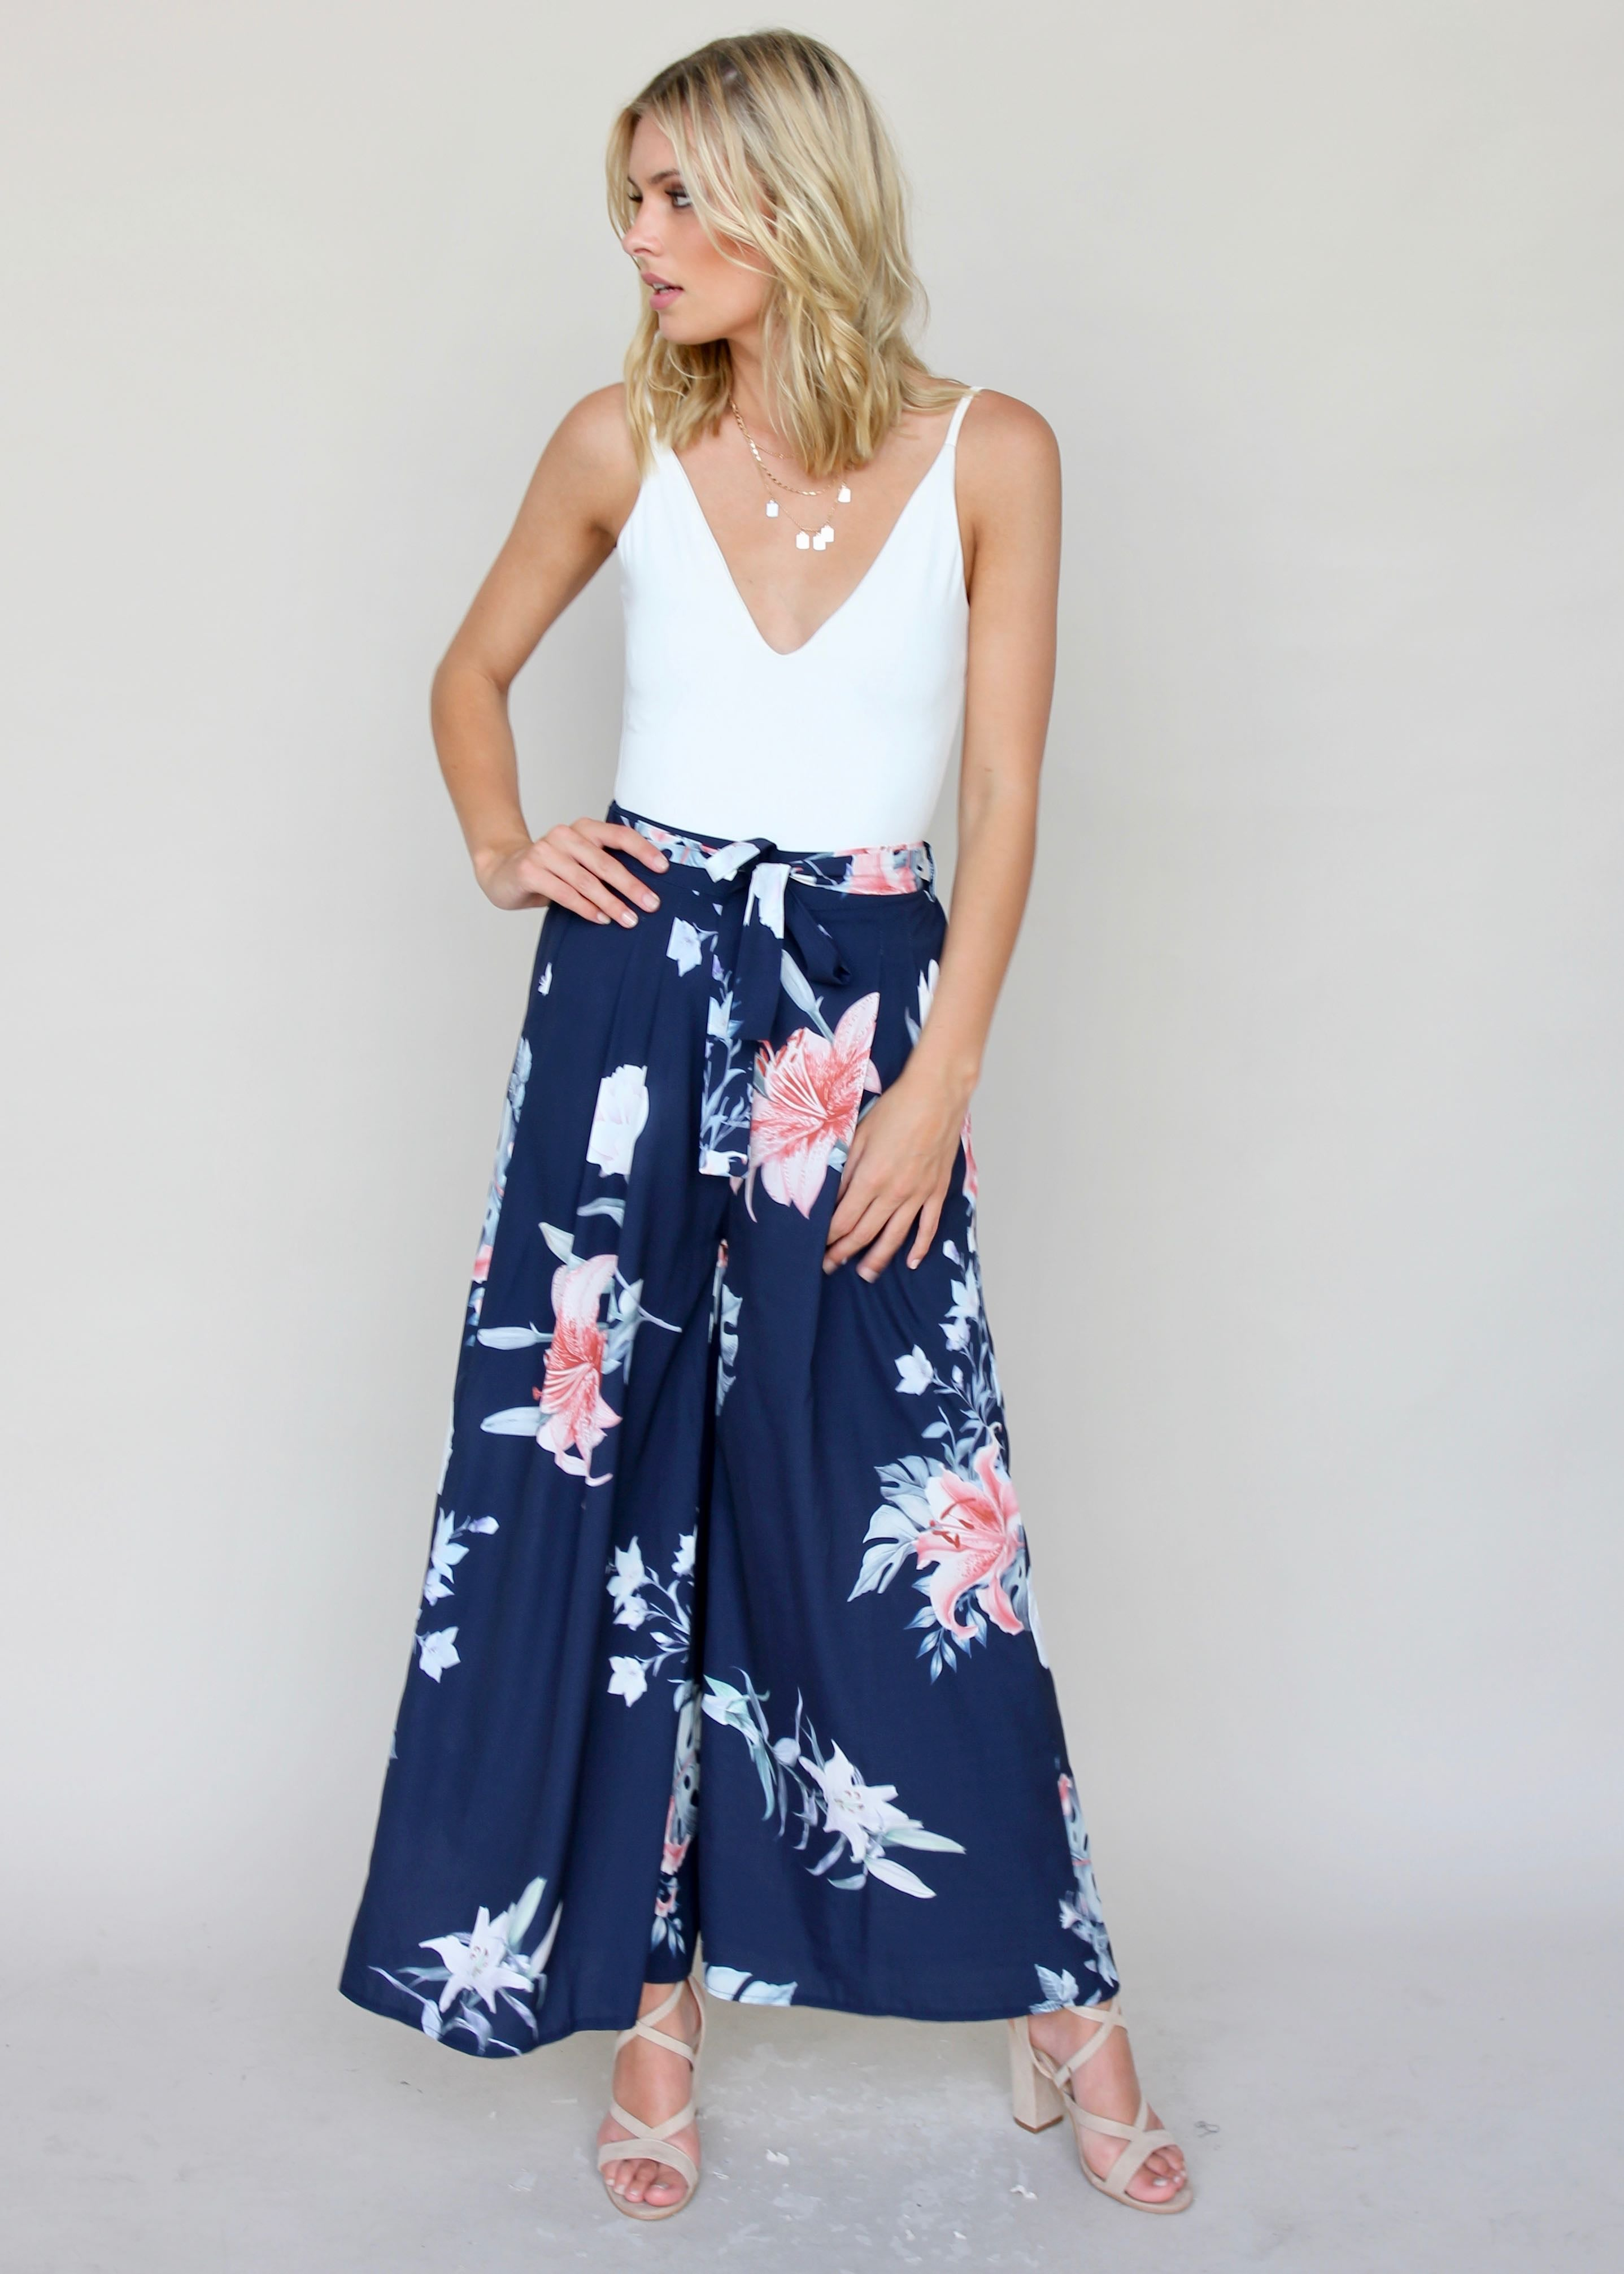 Little Love Pants - Hibiscus